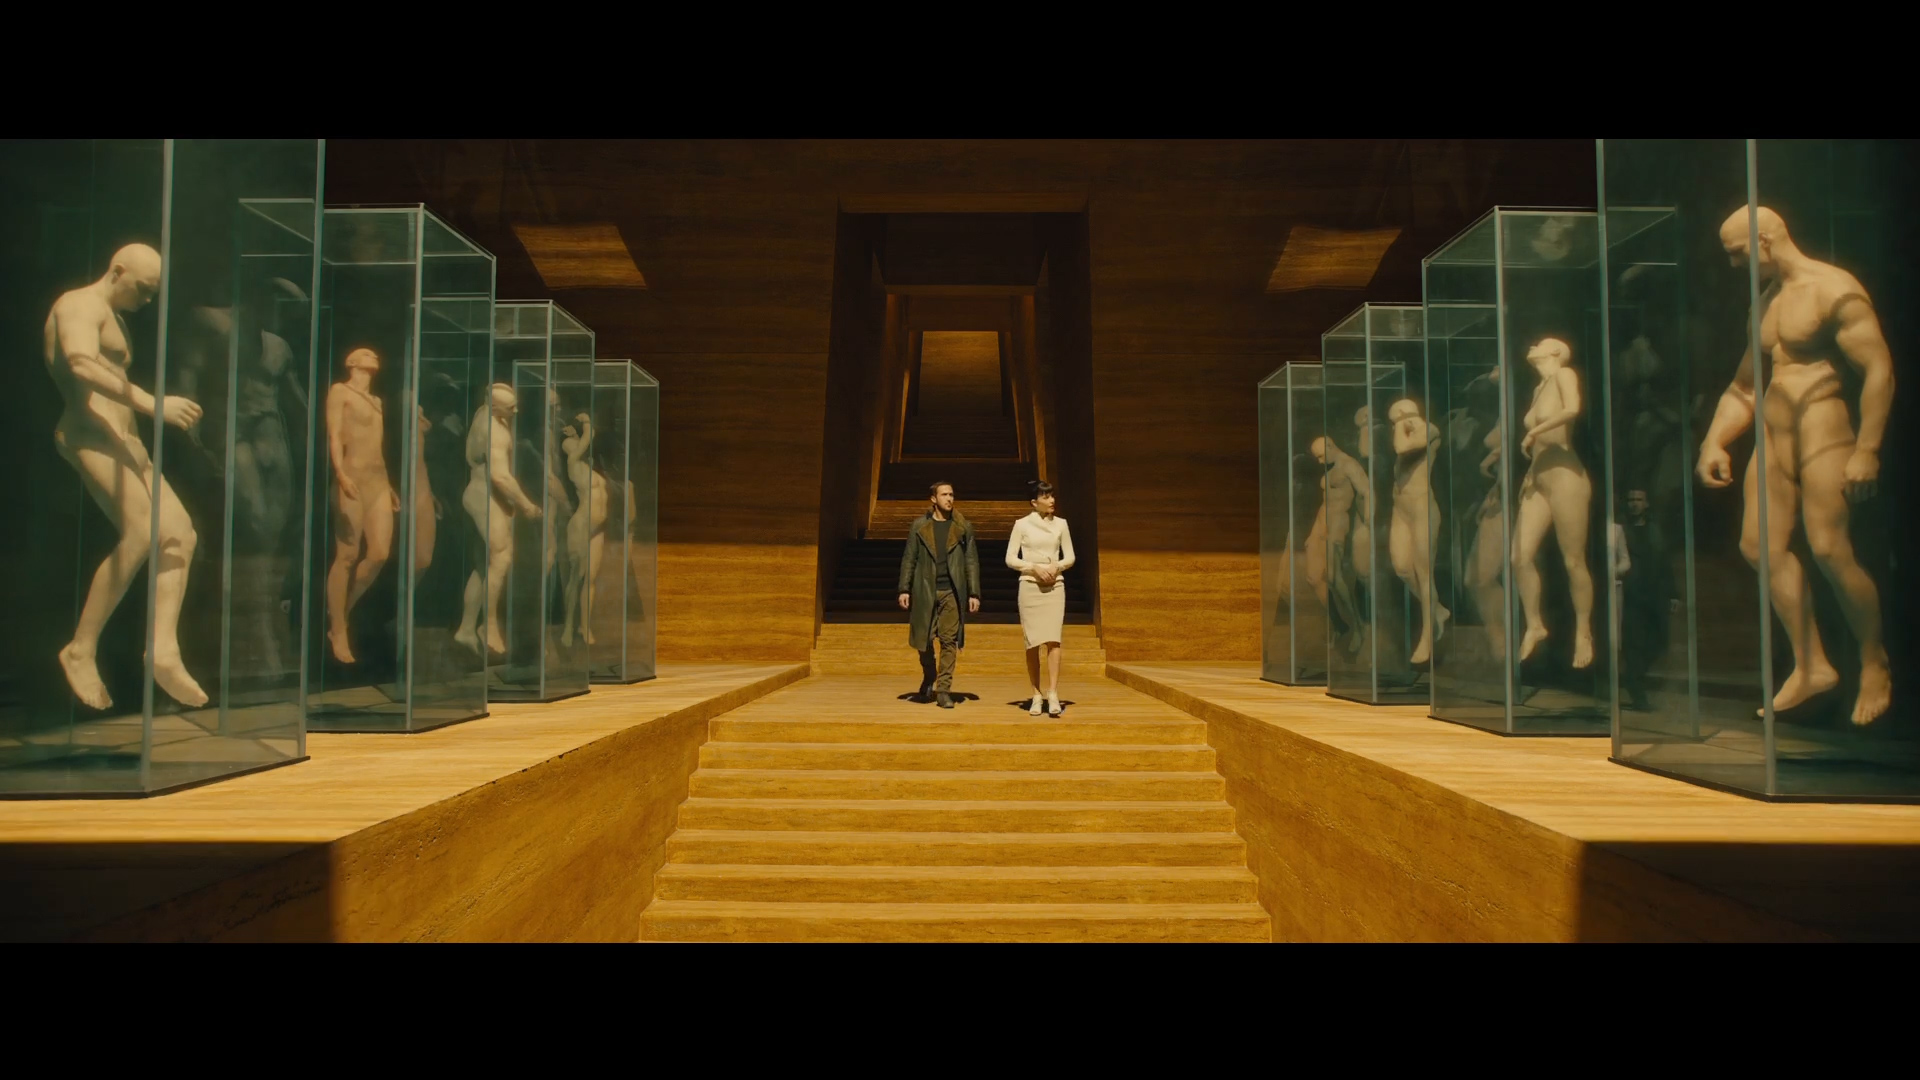 Blade Runner 2049 Cinematography Oscars 2018 predictions